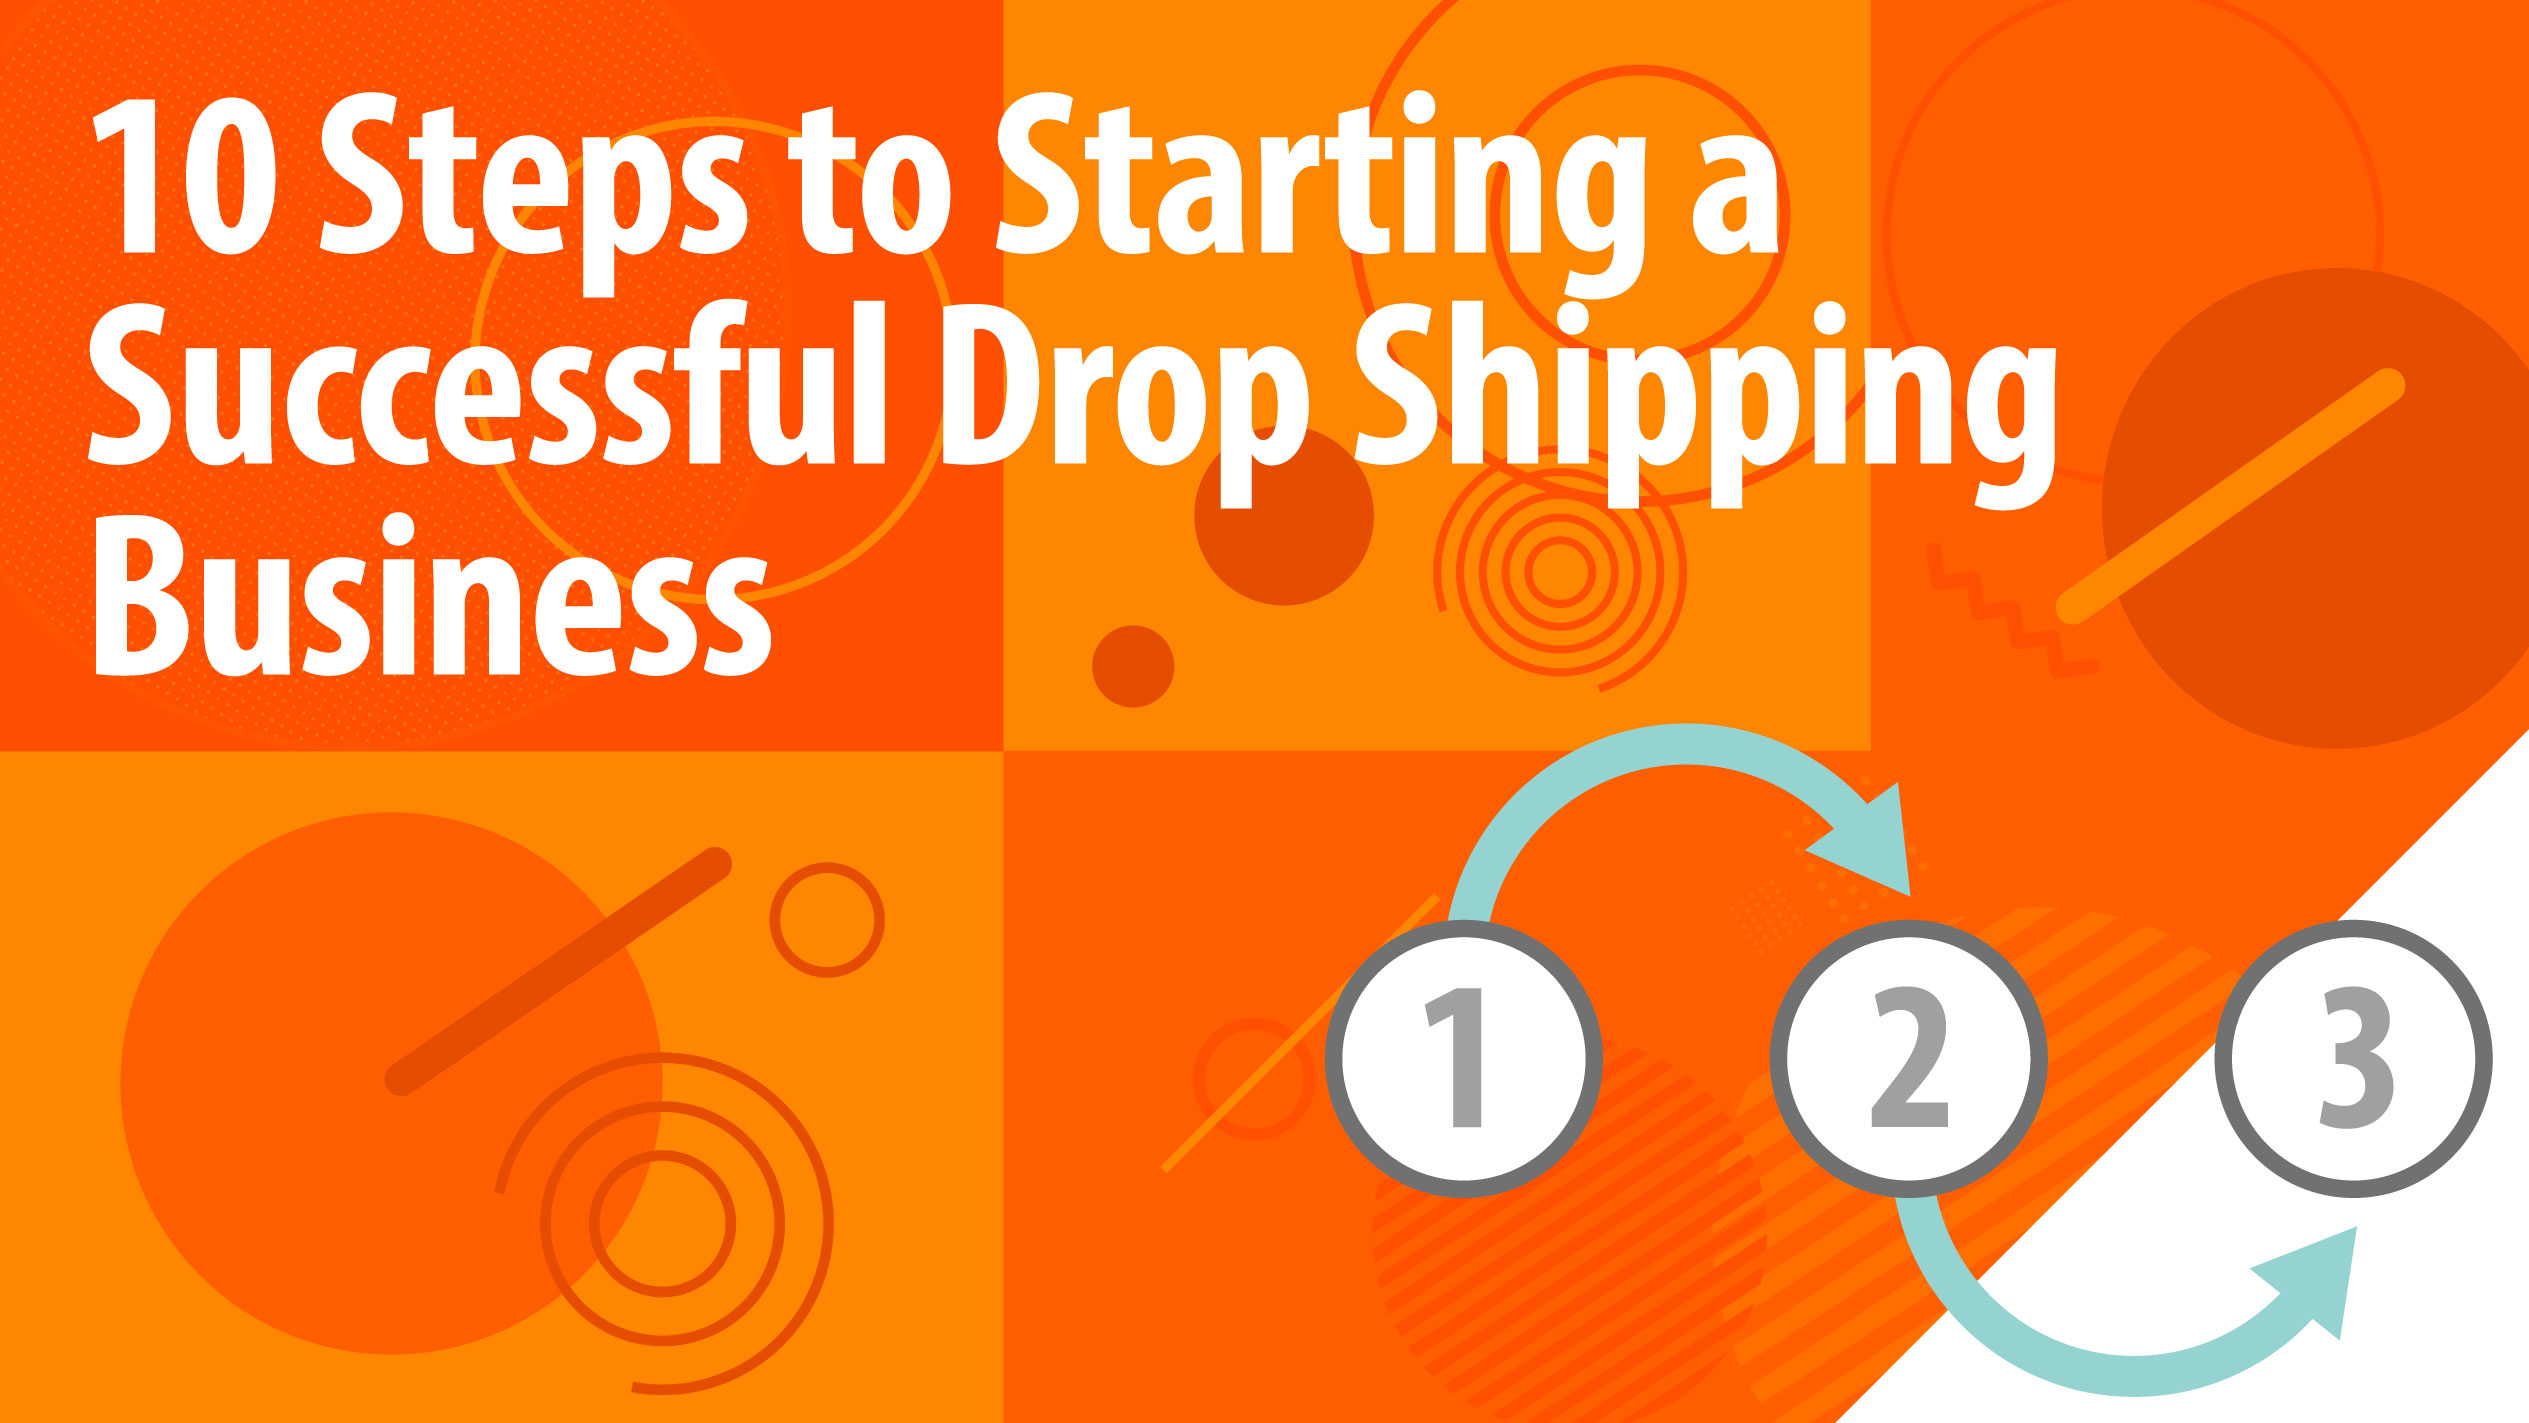 10 Steps to Starting a Successful Drop Shipping Business